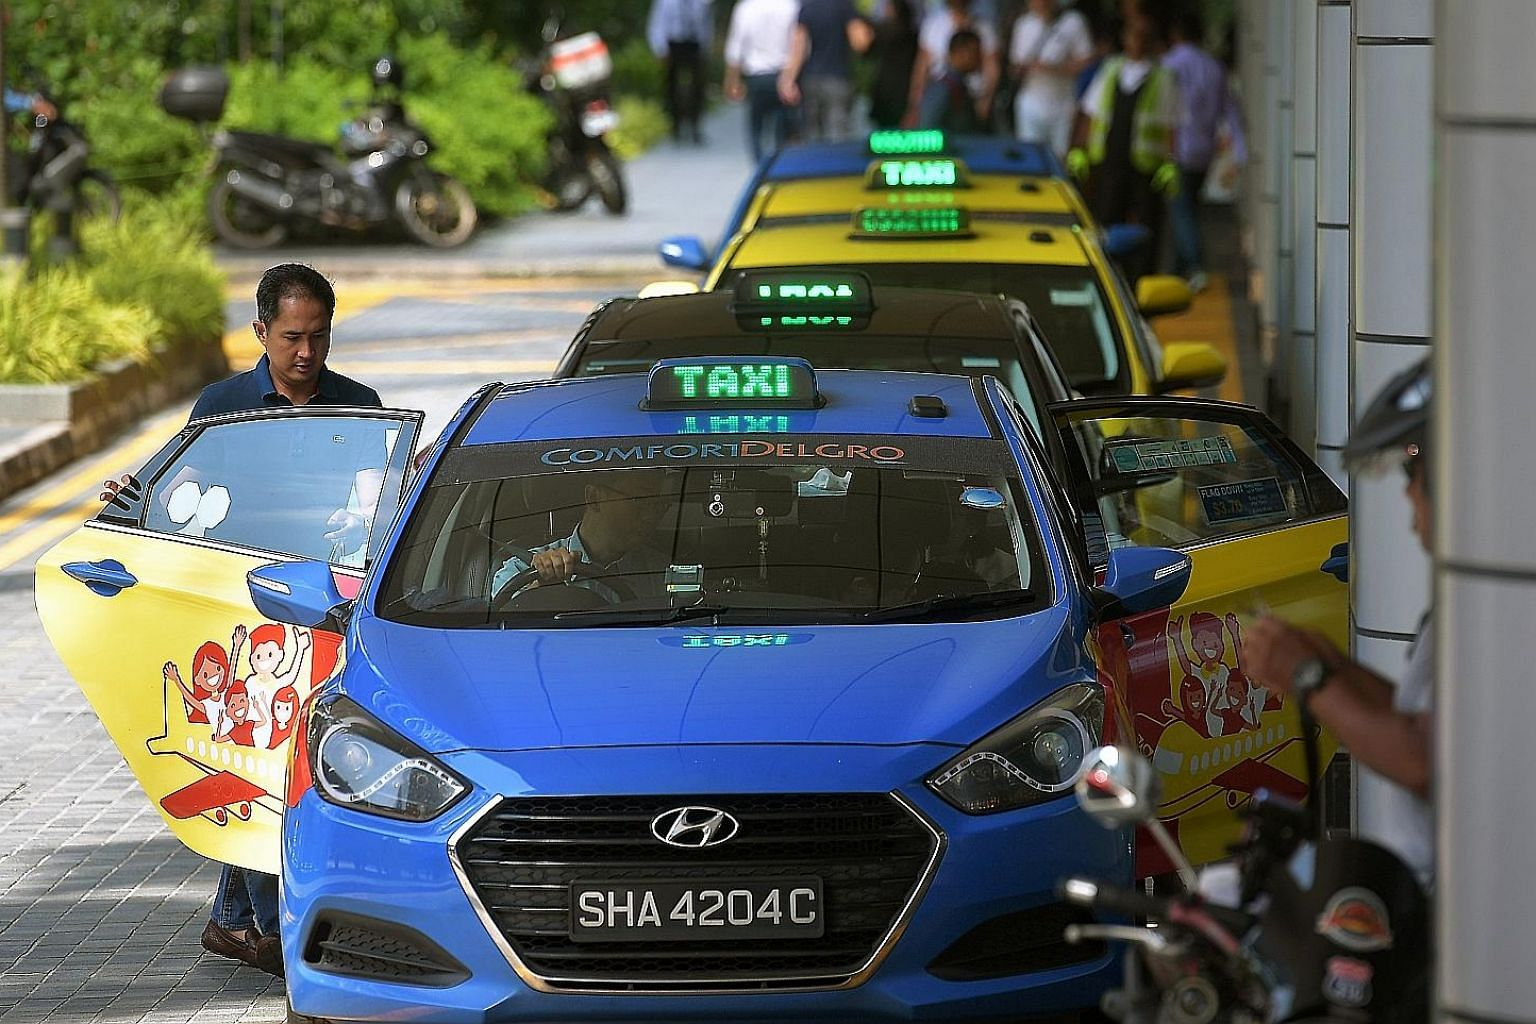 Net profit at the Singapore-based ComfortDelGro was 3.5 per cent higher at $146.3 million for the half year. Its public transport businesses accounted for the lion's share of earnings in the first six months, with operating income of $117.9 million -